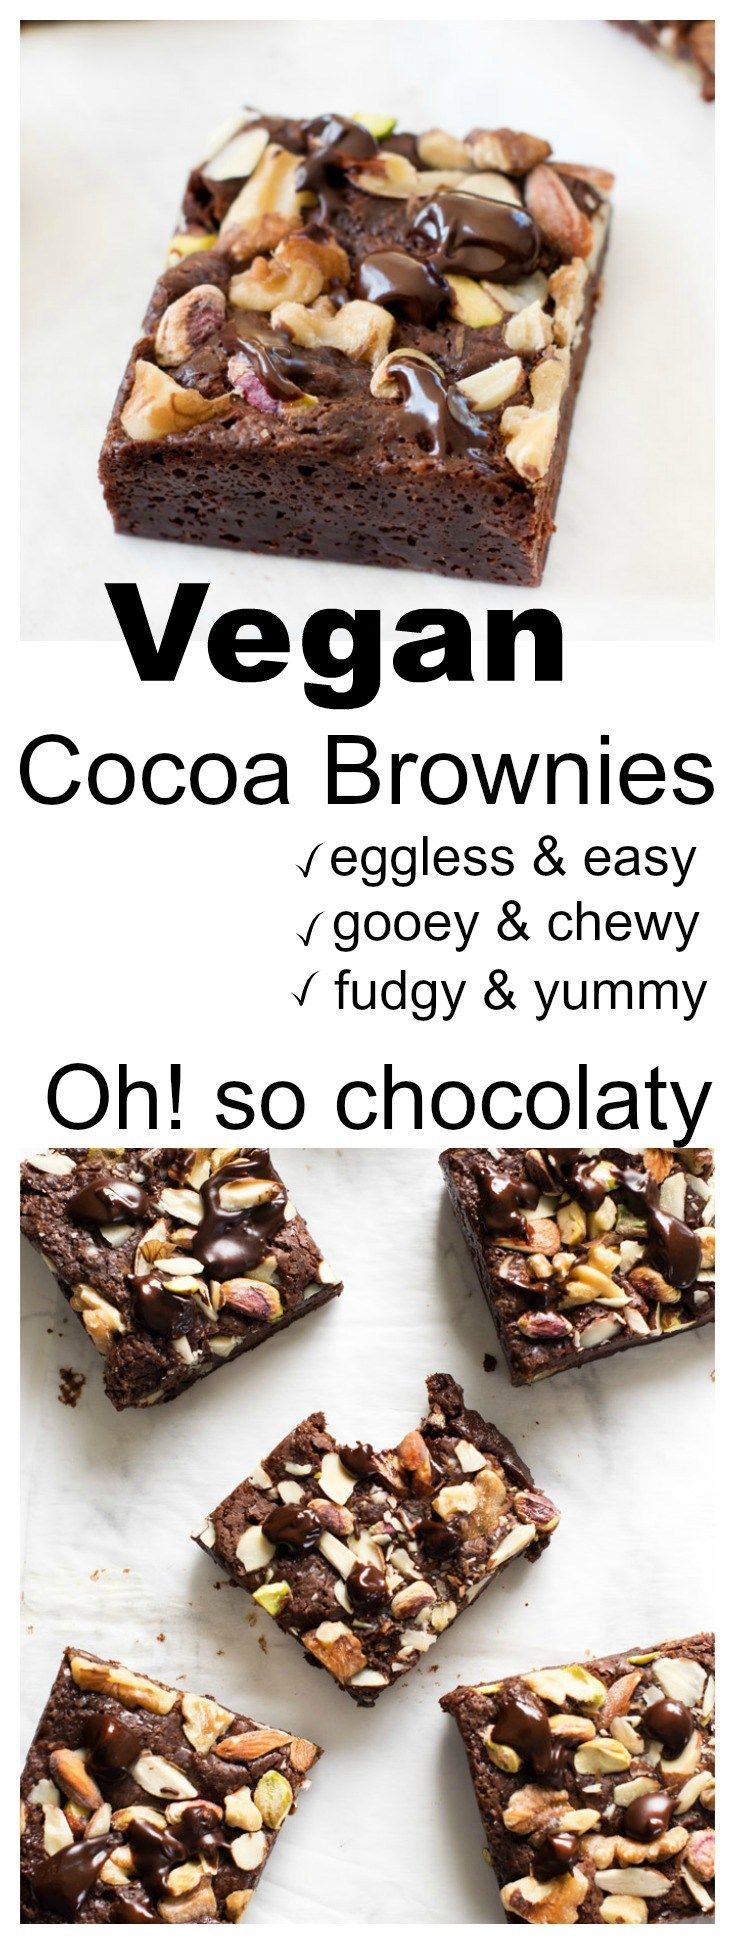 These eggless fudgy cocoa brownies| Simple Vegan brownies will change your life forever!